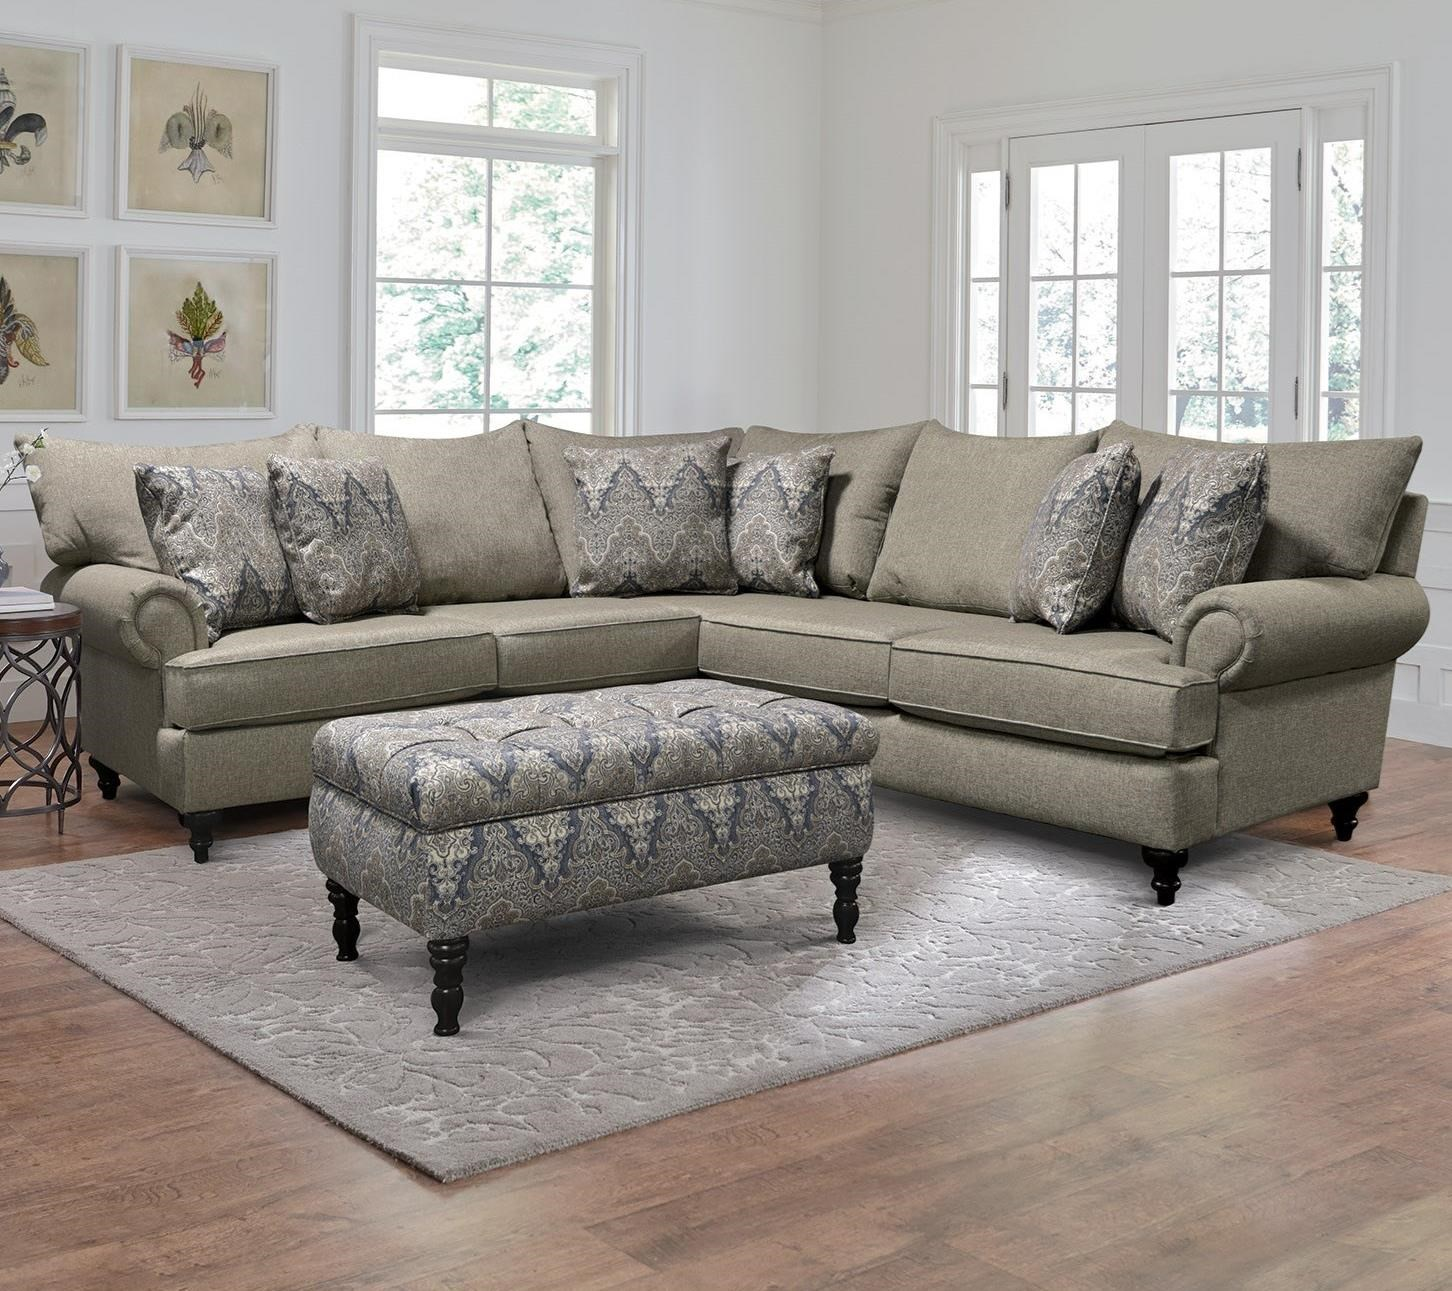 Rosalie Sectional Sofa by England at VanDrie Home Furnishings